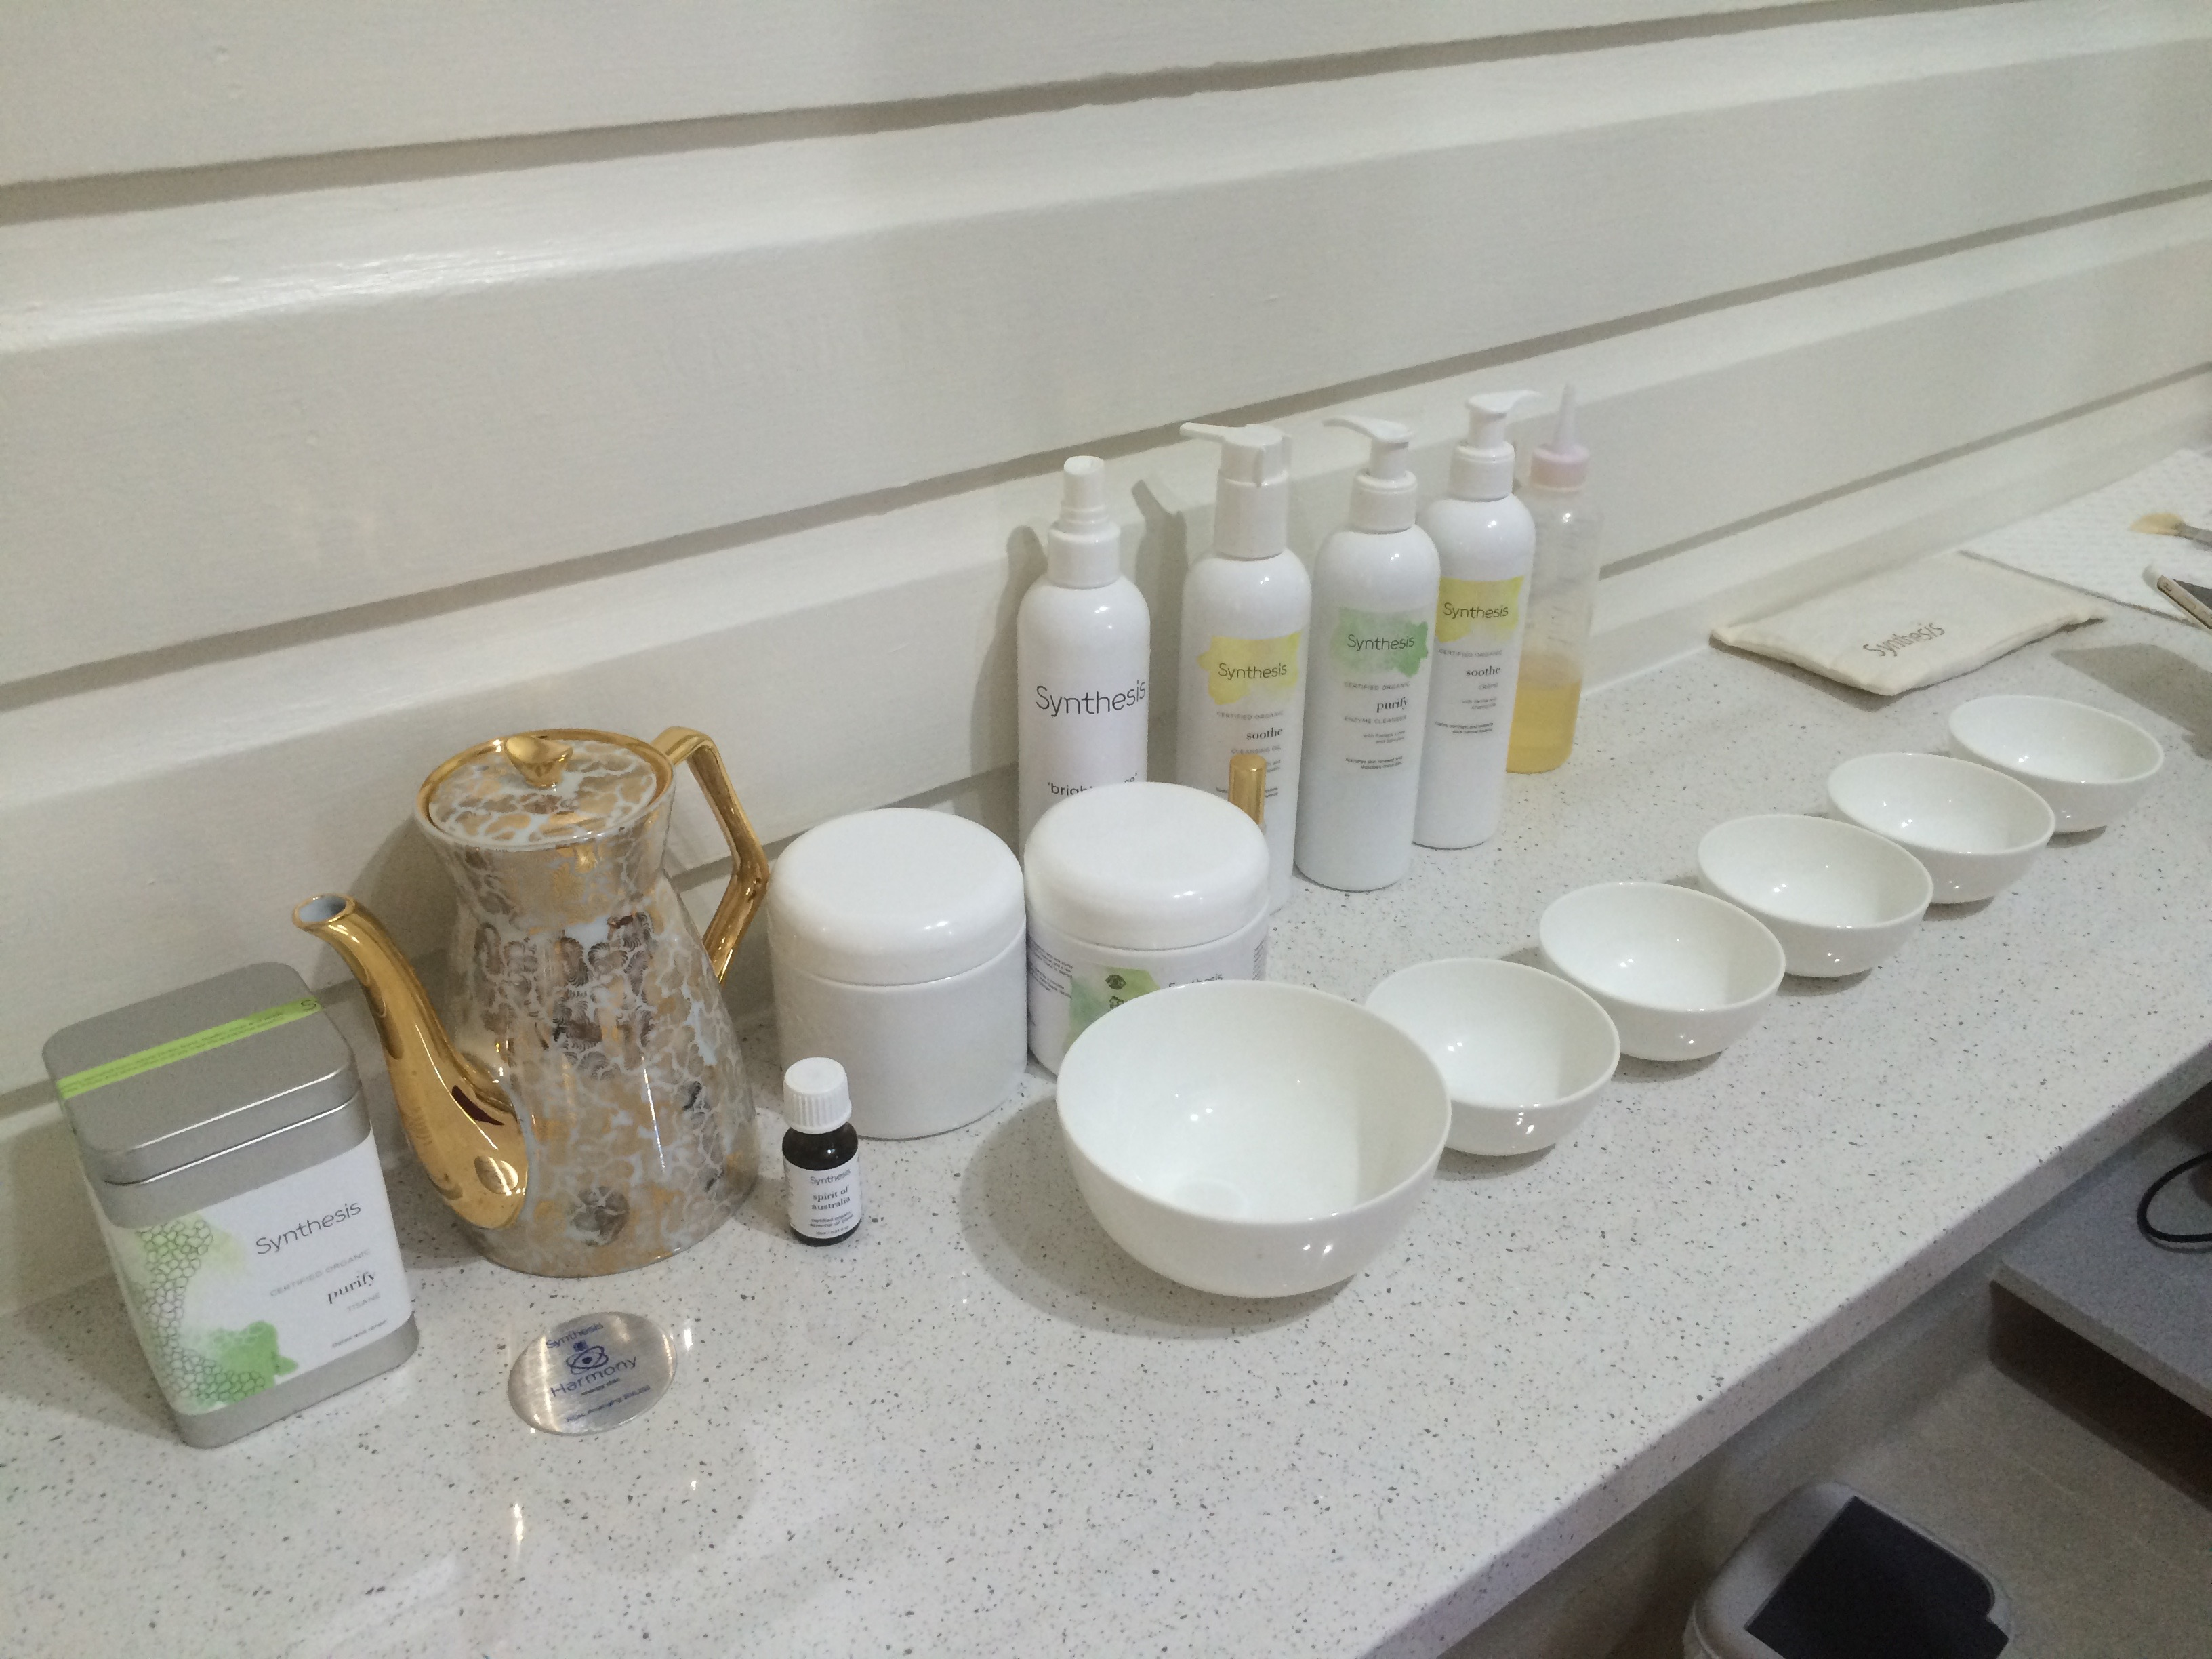 Spa Wellbeing Wellness Tea Skincare Treatment Synthesis Cleanse Soothe